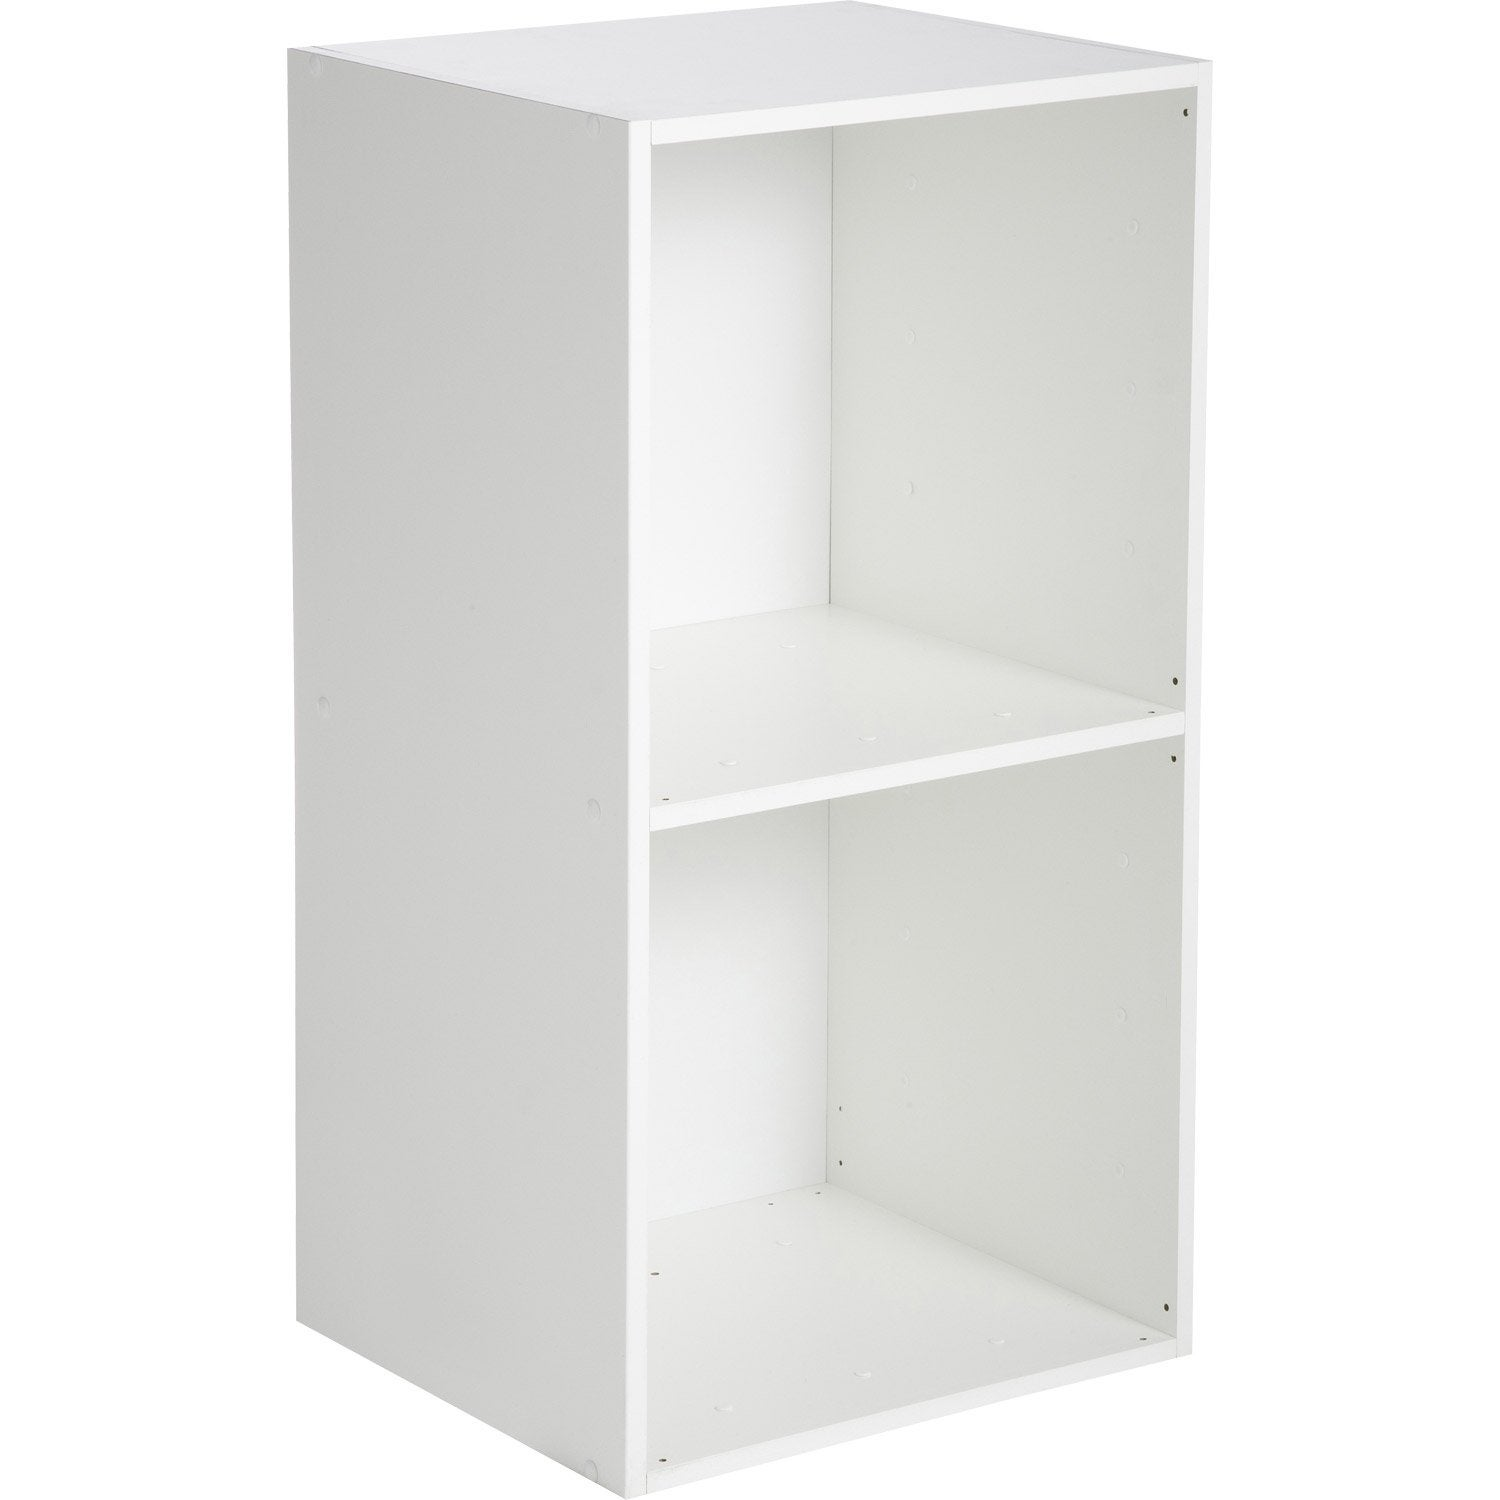 Etag re 2 cases multikaz blanc x x - Etagere modulable leroy merlin ...